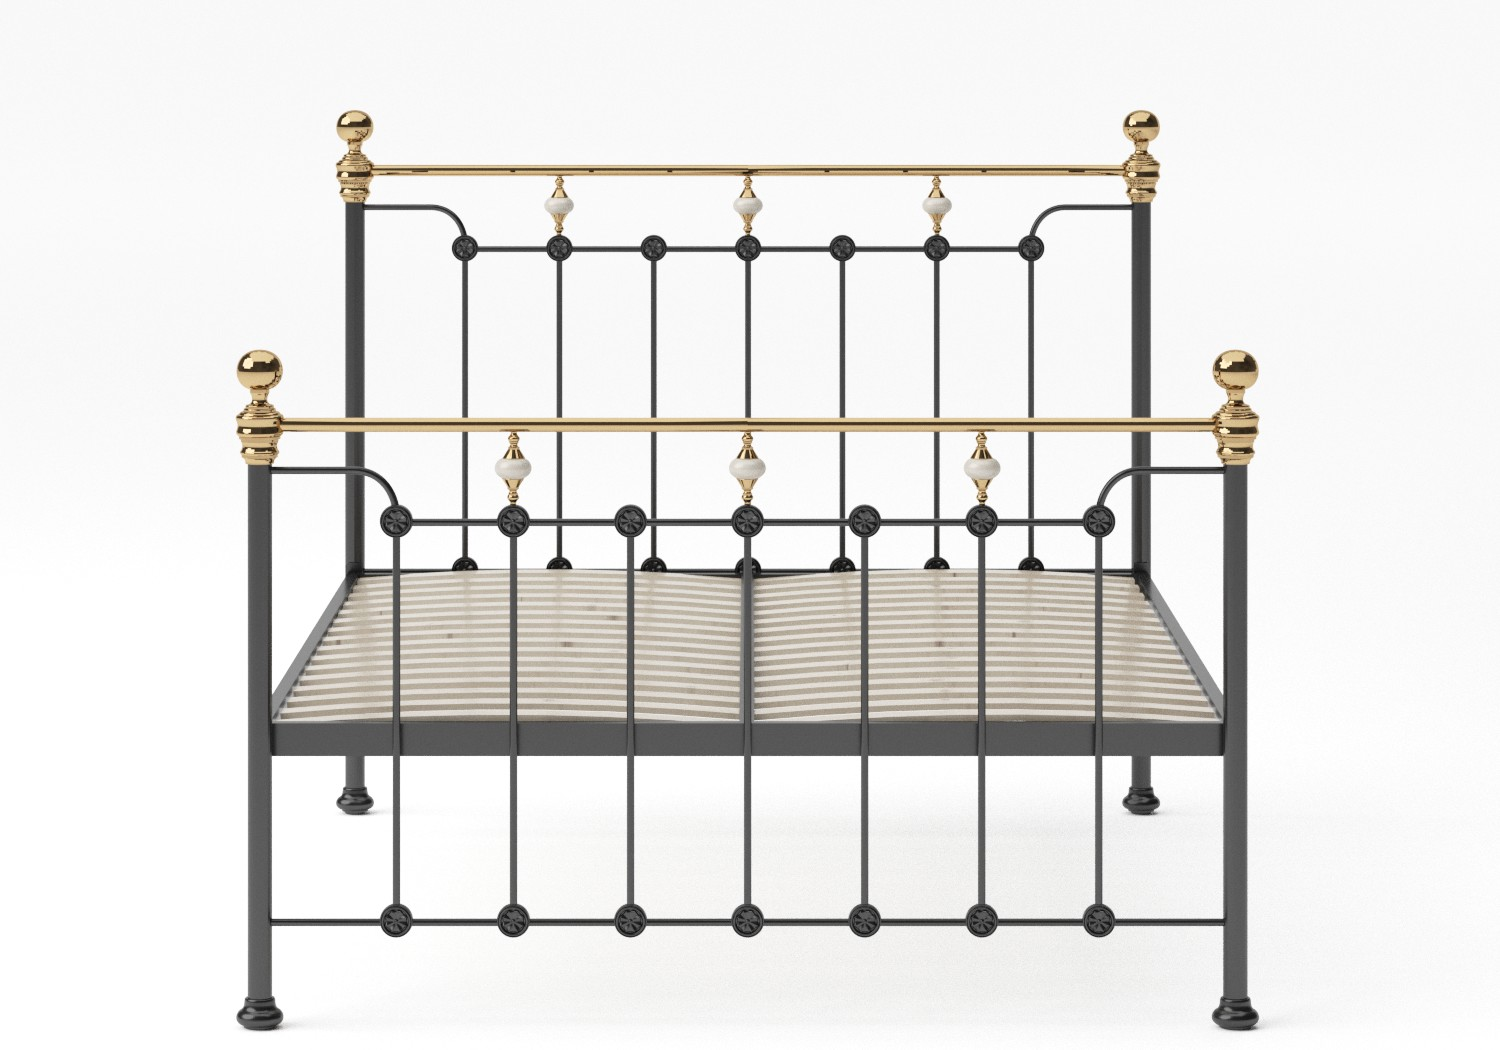 Glenholm Iron/Metal Bed in Satin Black with Brass details shown with slatted frame